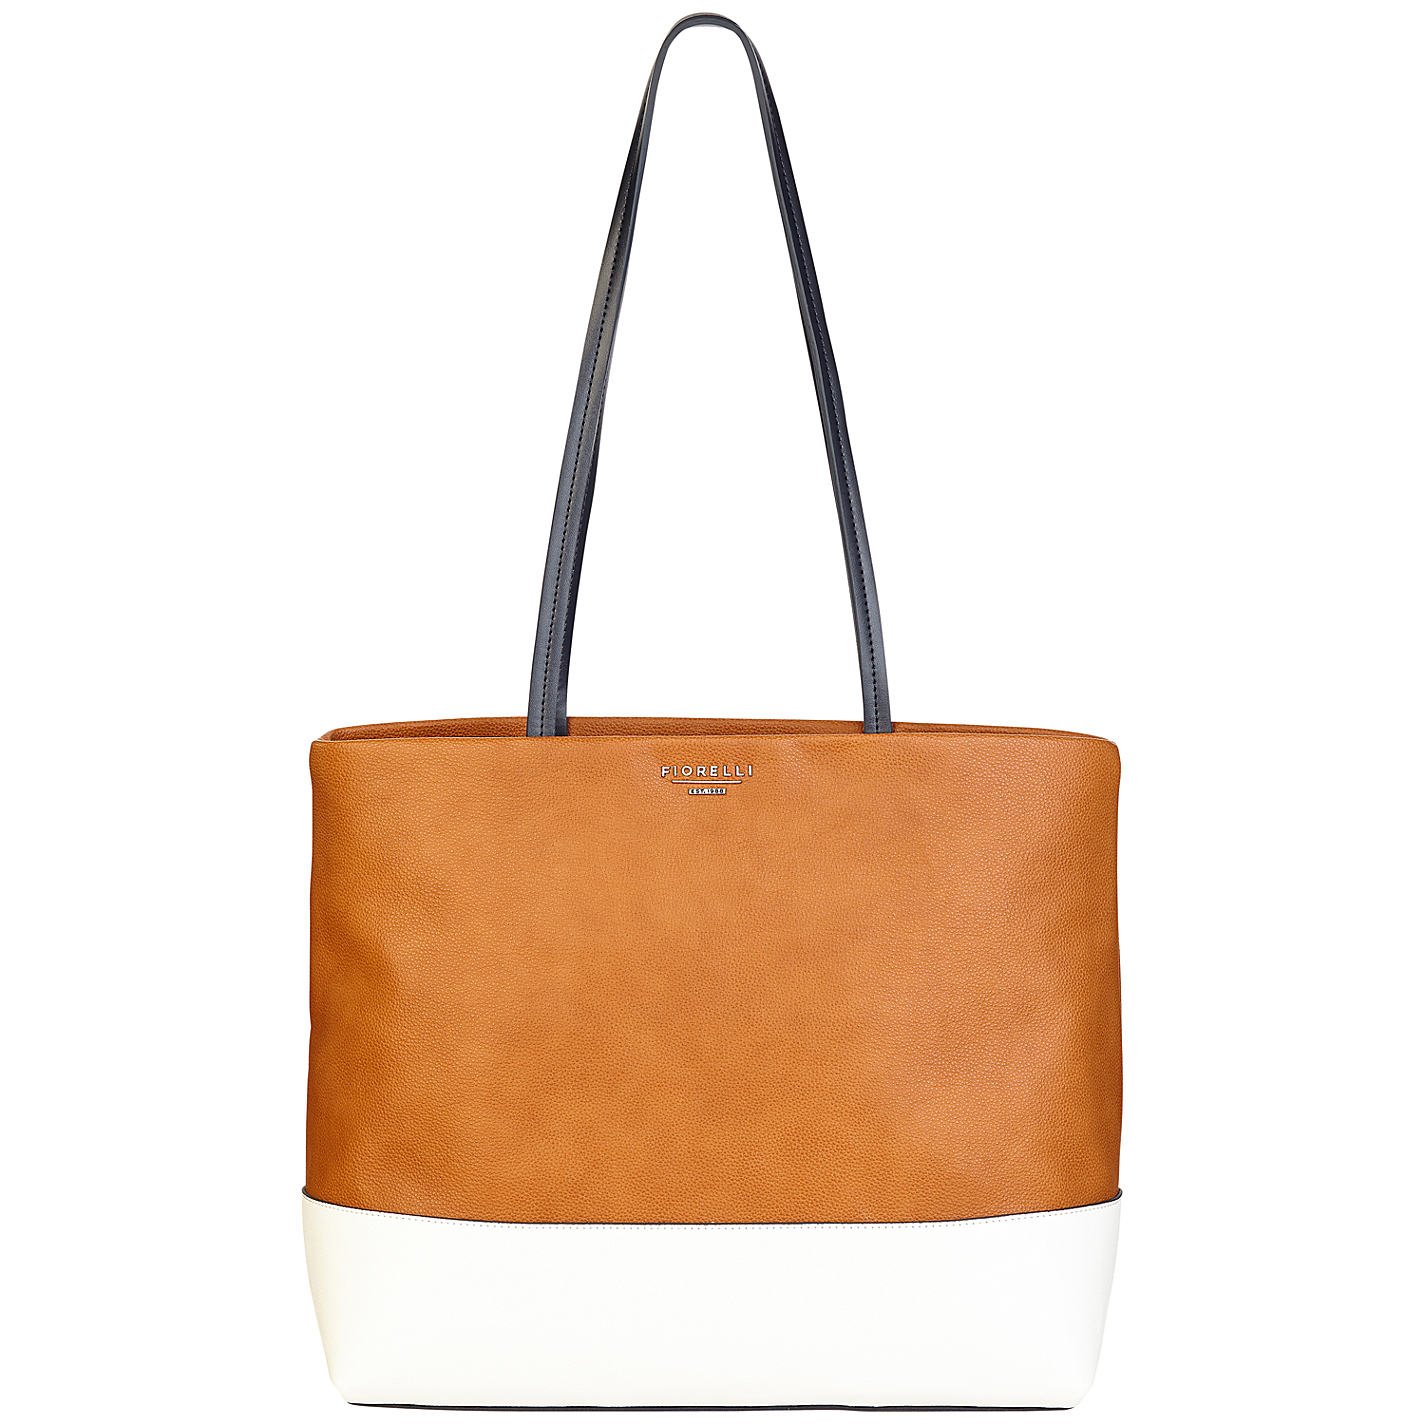 Fiorelli Tribeca Shoulder Bag 97